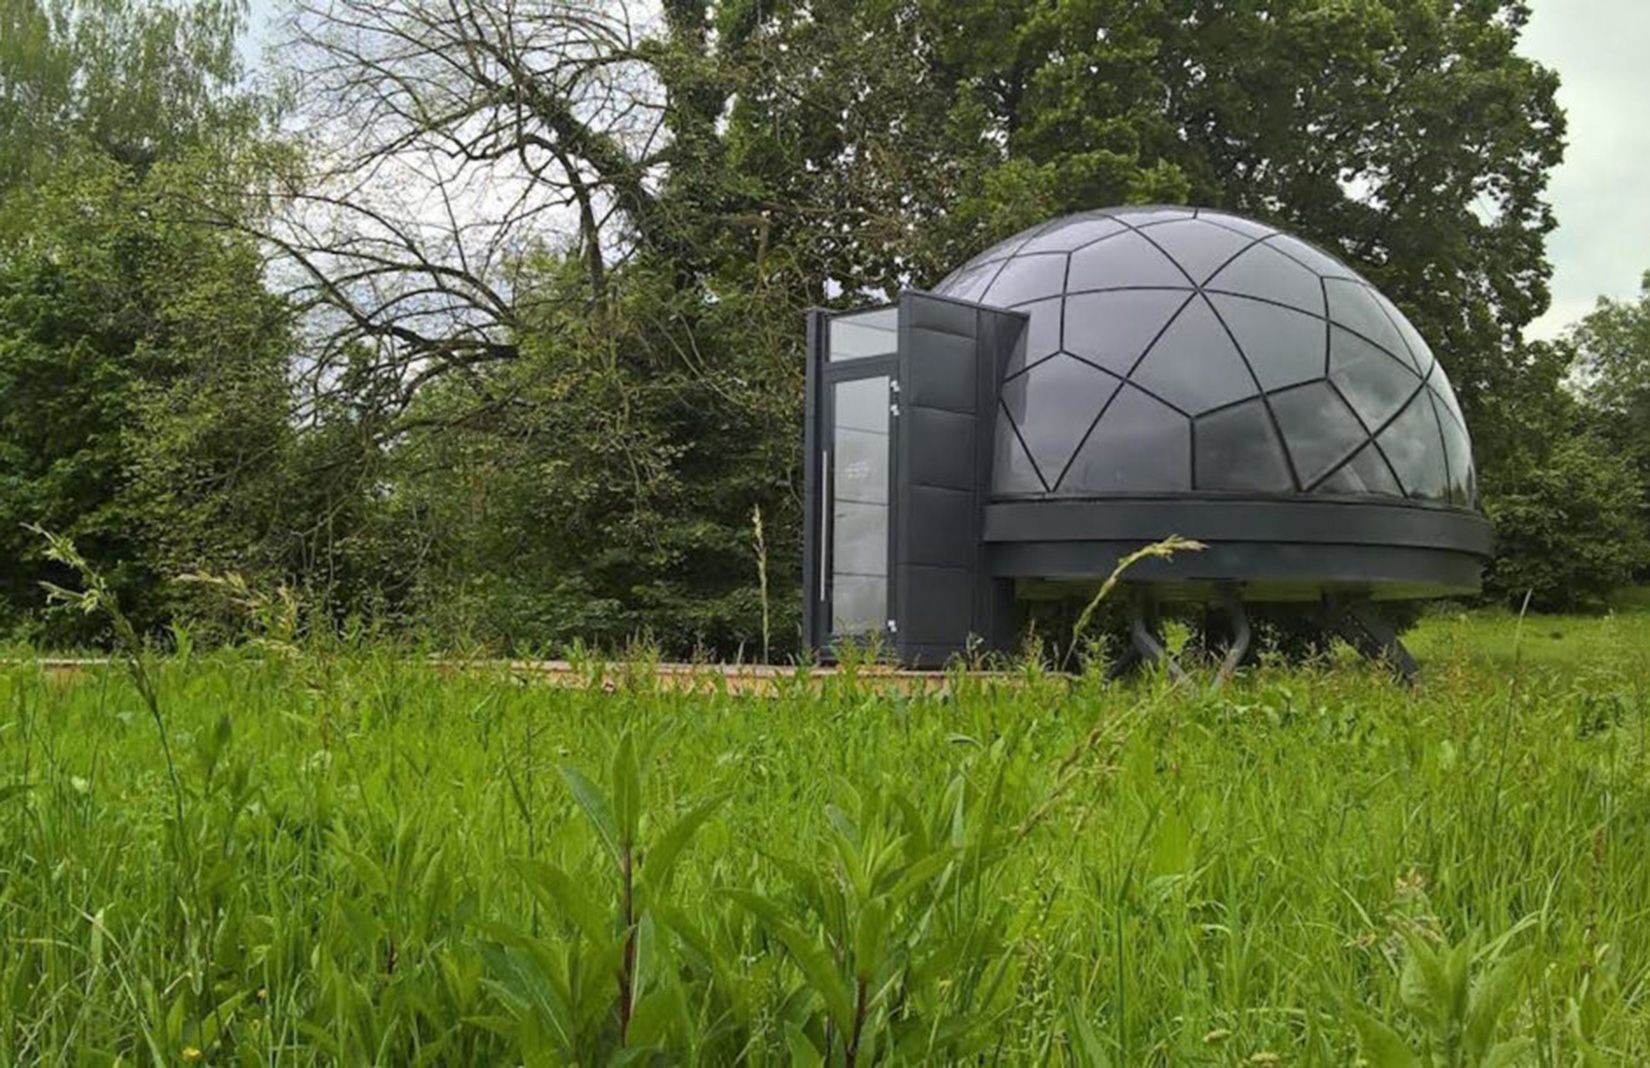 Smartdome Tiny Home Dome House Geodesic Dome Homes Geodesic Dome